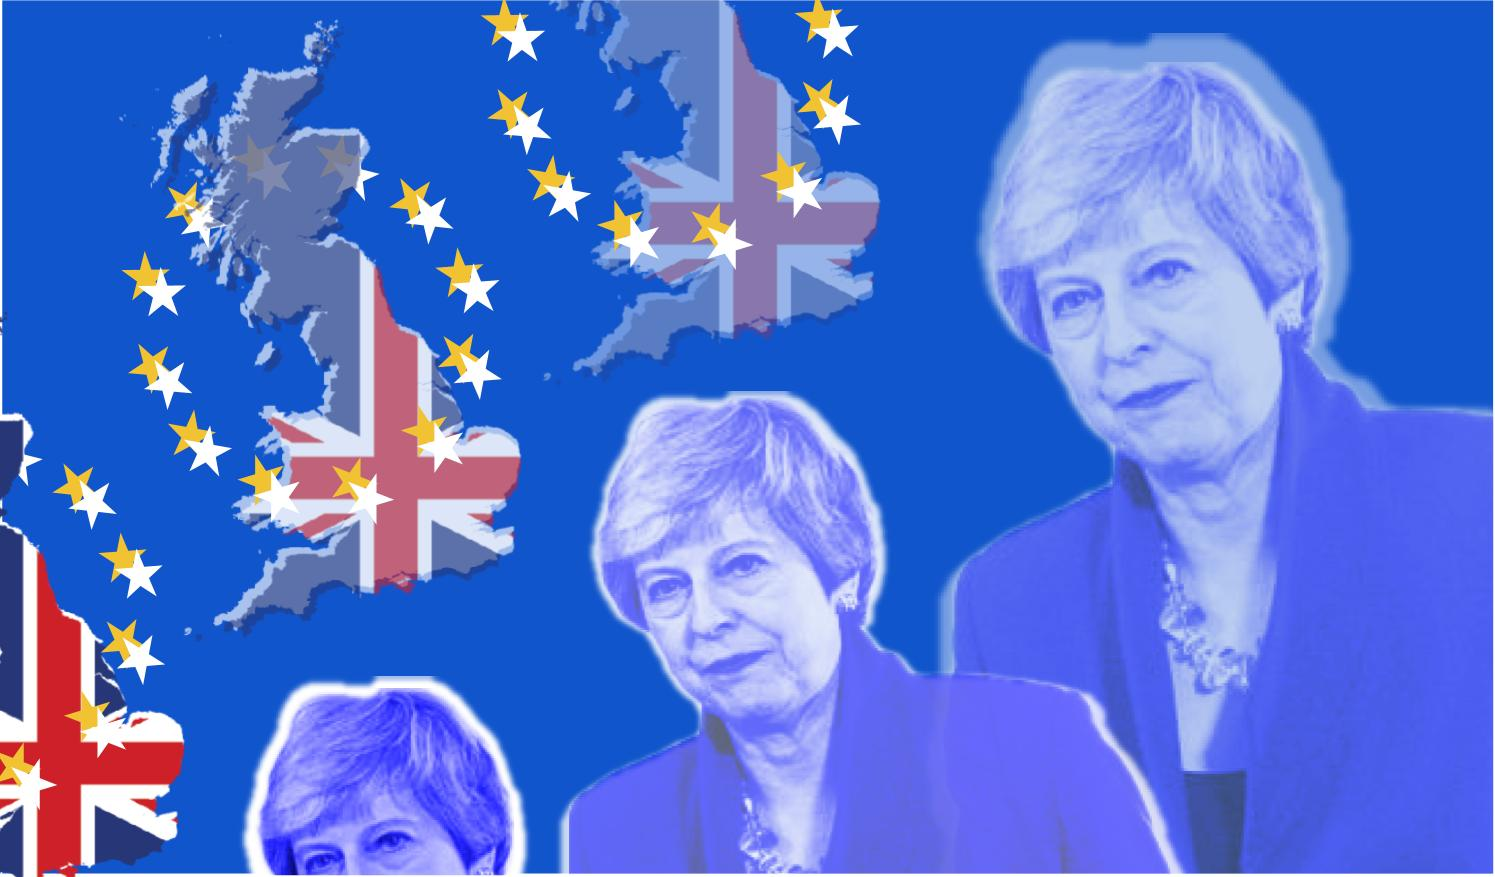 The UK must finalize plans to leave the European Union by October 31st, 2019.